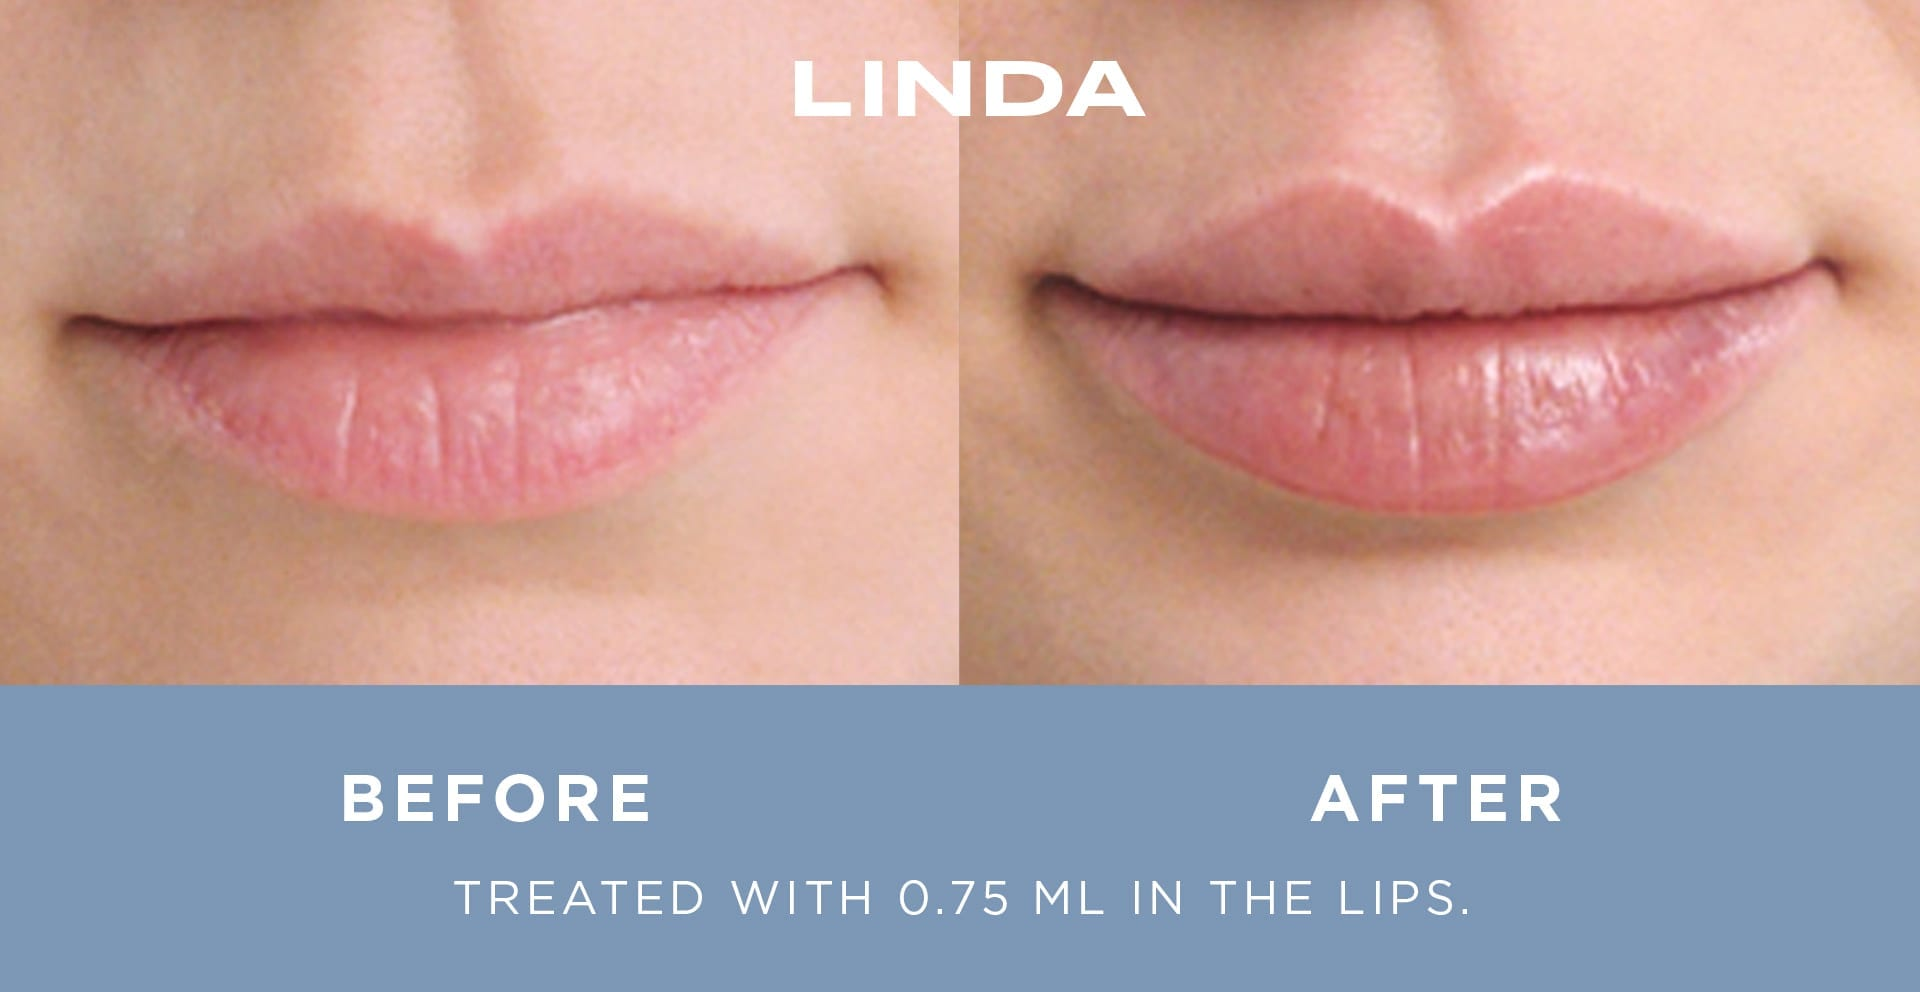 Side by side comparison of woman's lips